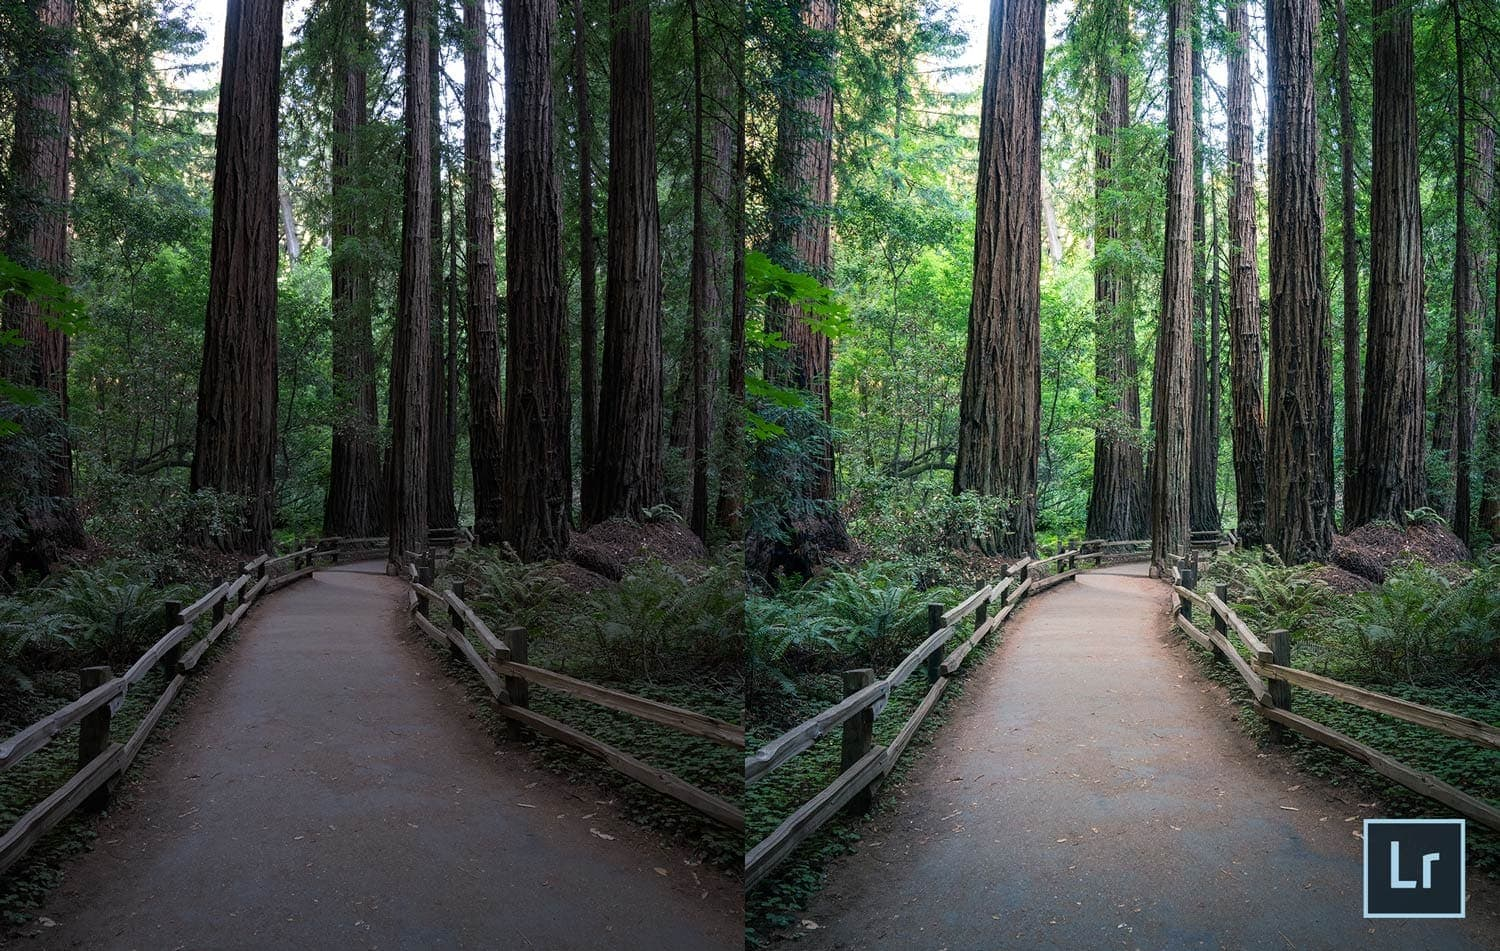 Free-Lightroom-Preset-Trail-Blaze-Before-and-After-Presetpro.com